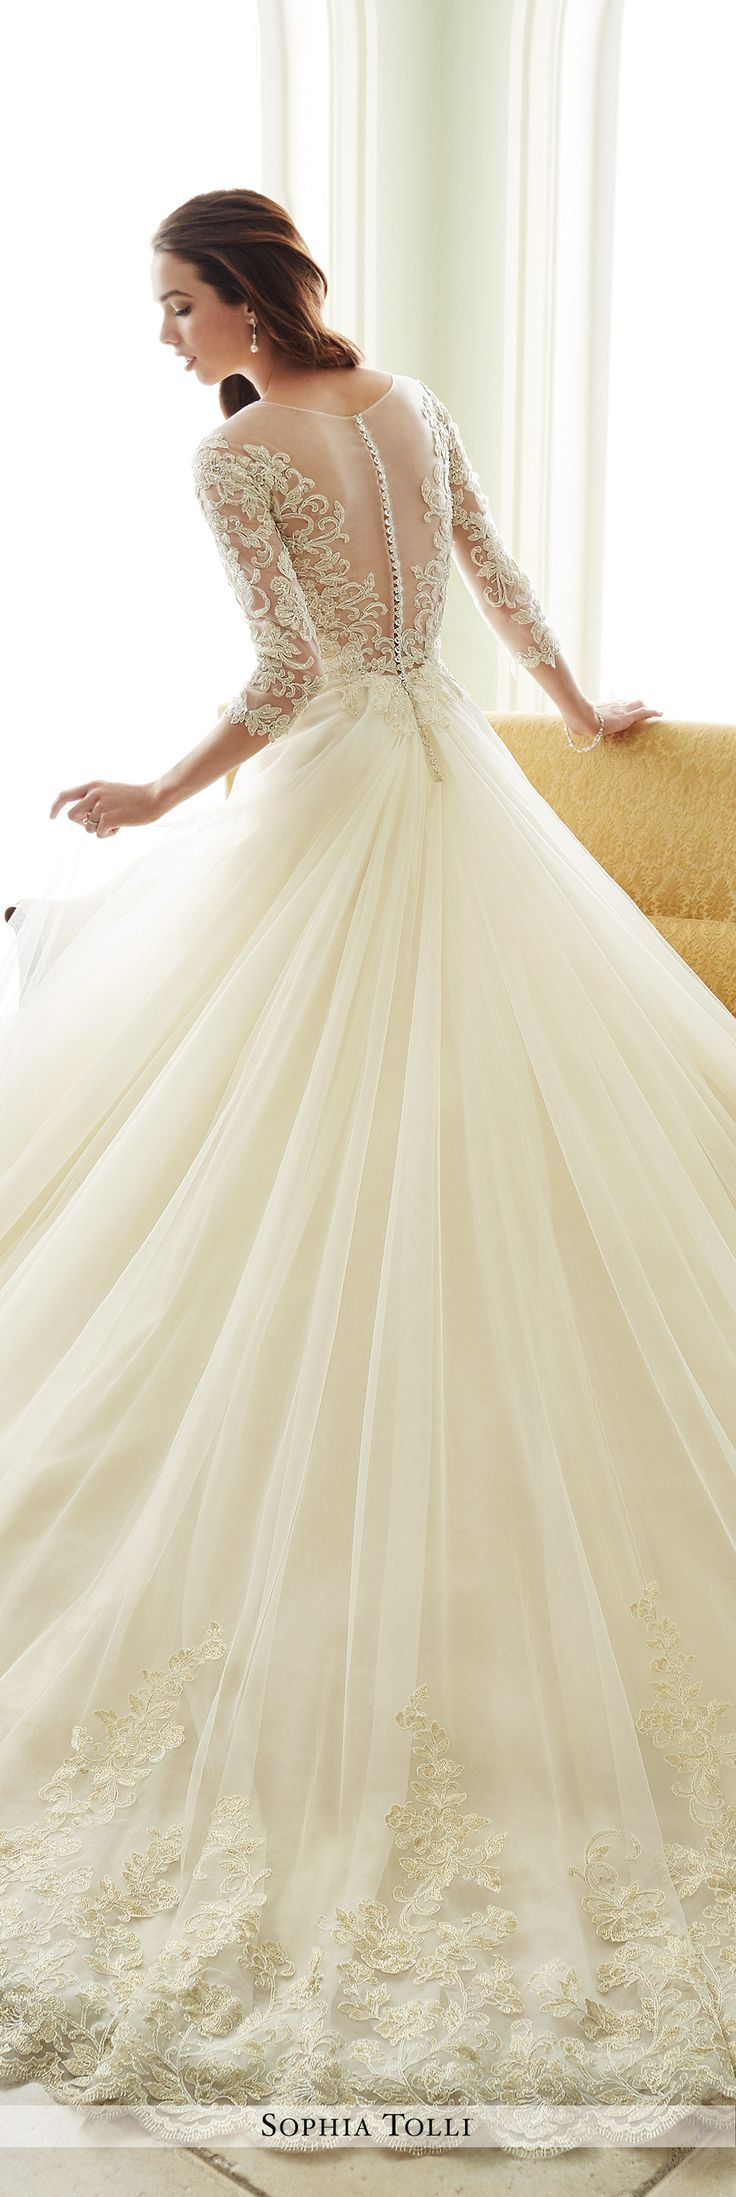 Sophia Tolli Fall 18 Wedding Gown Collection   Style No. Y18 ...